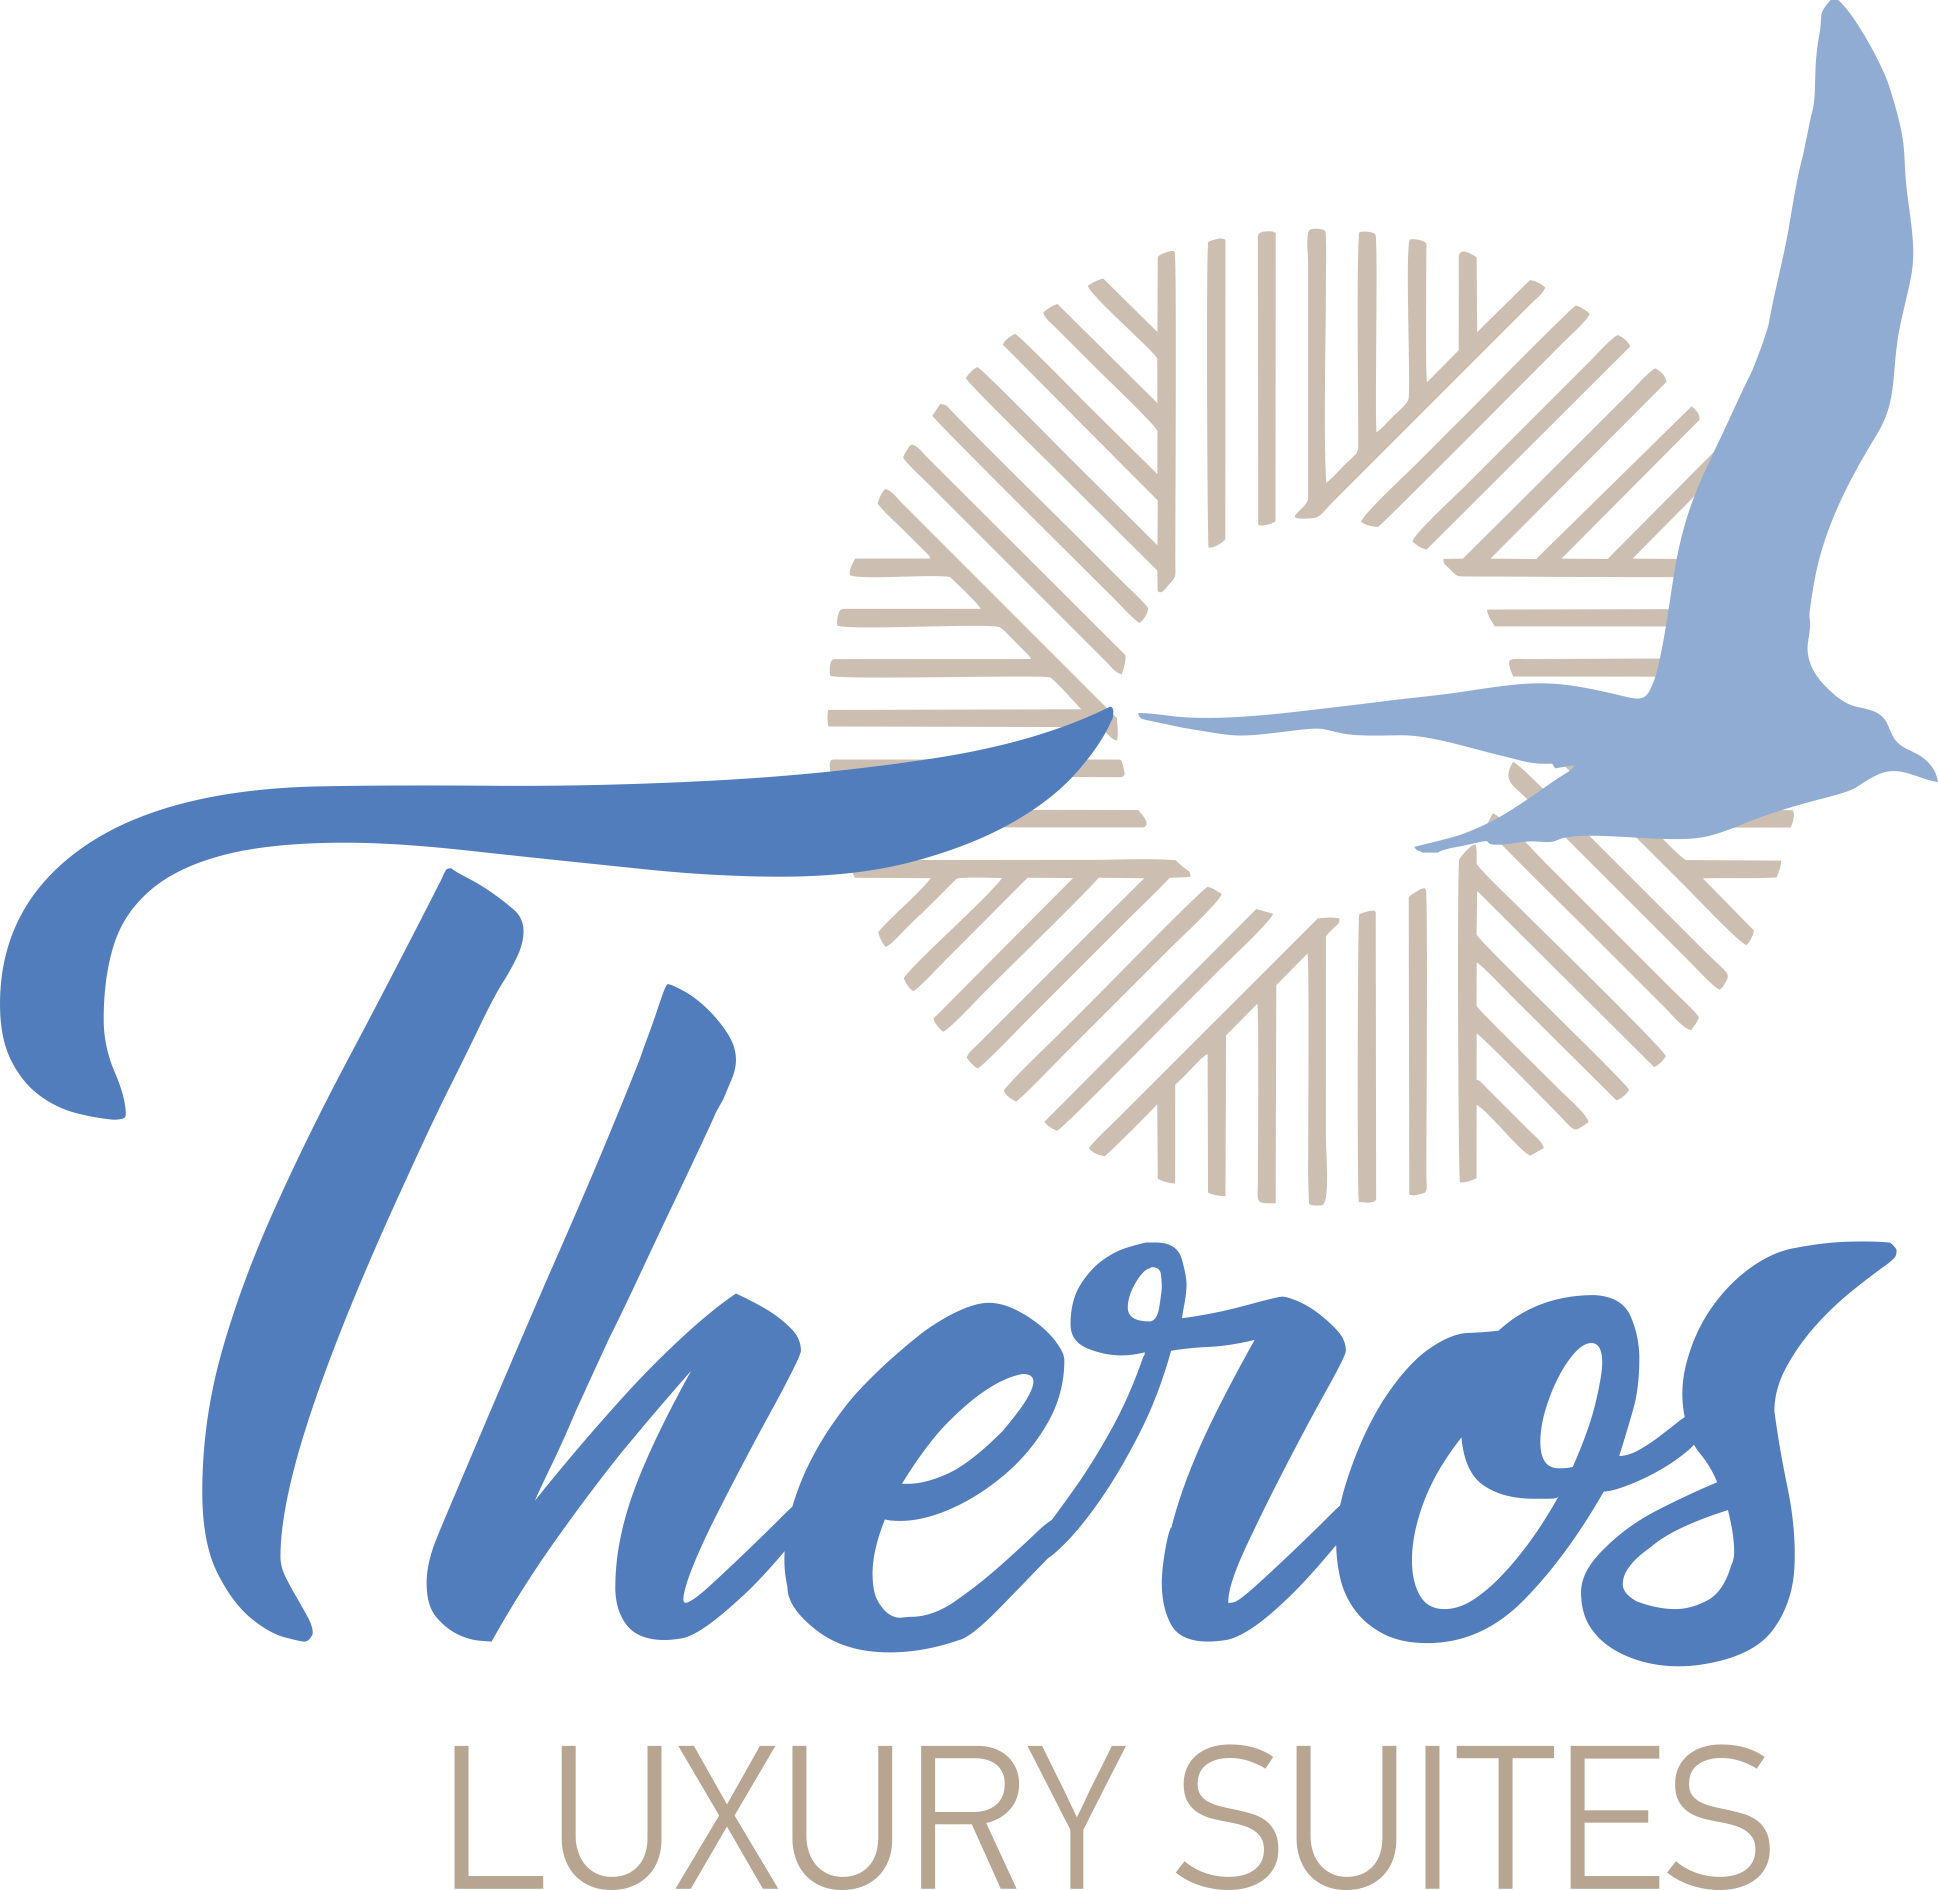 Theros Luxury Suites | Luxury Suites in Thassos